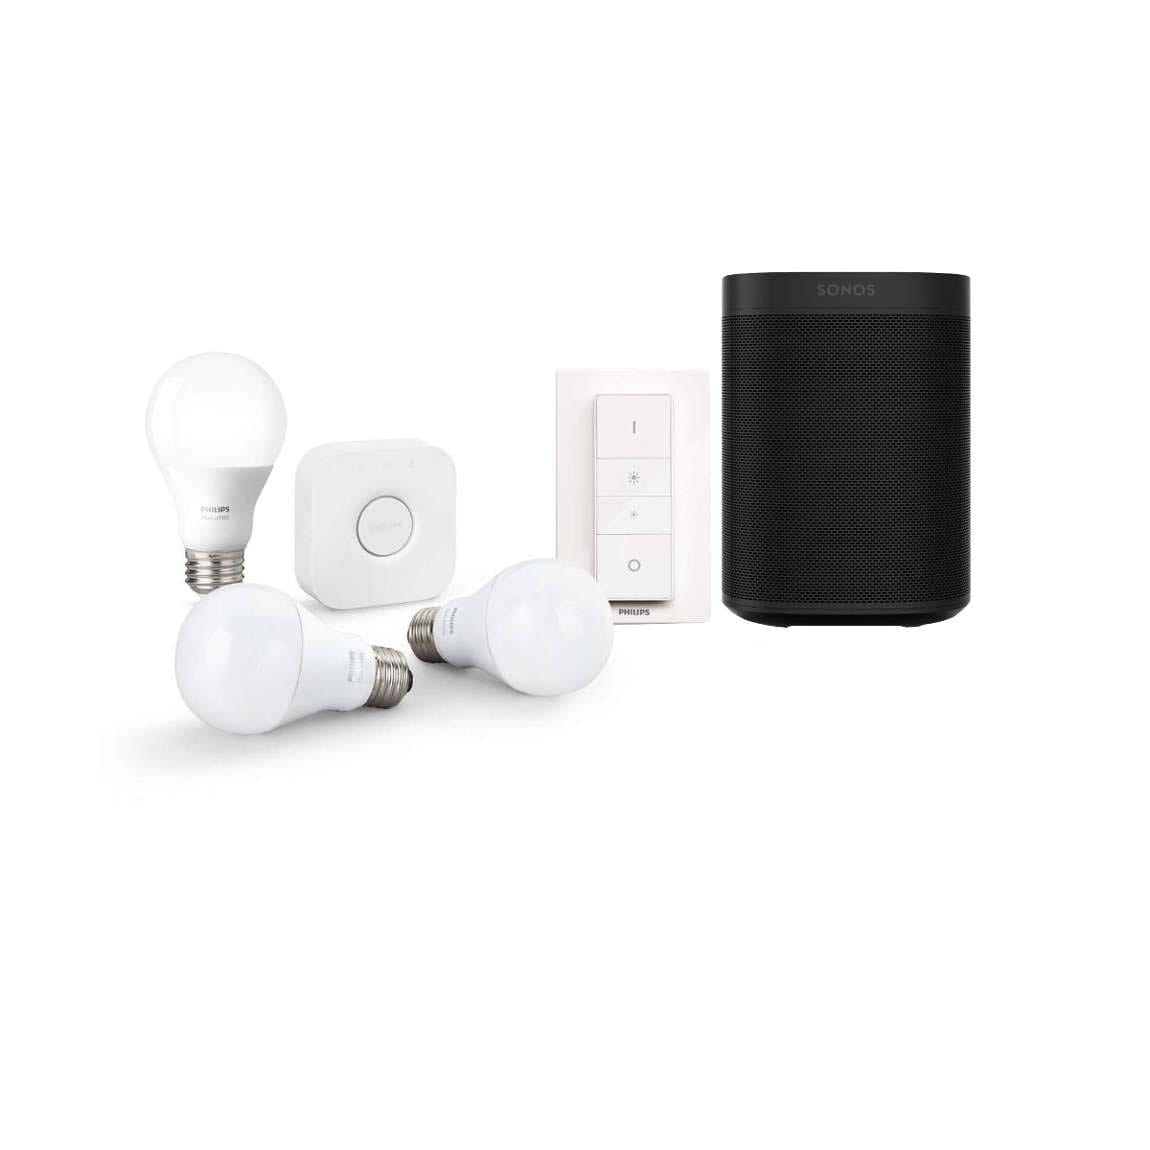 Sonos One + Philips Hue White E27 Starter Kit